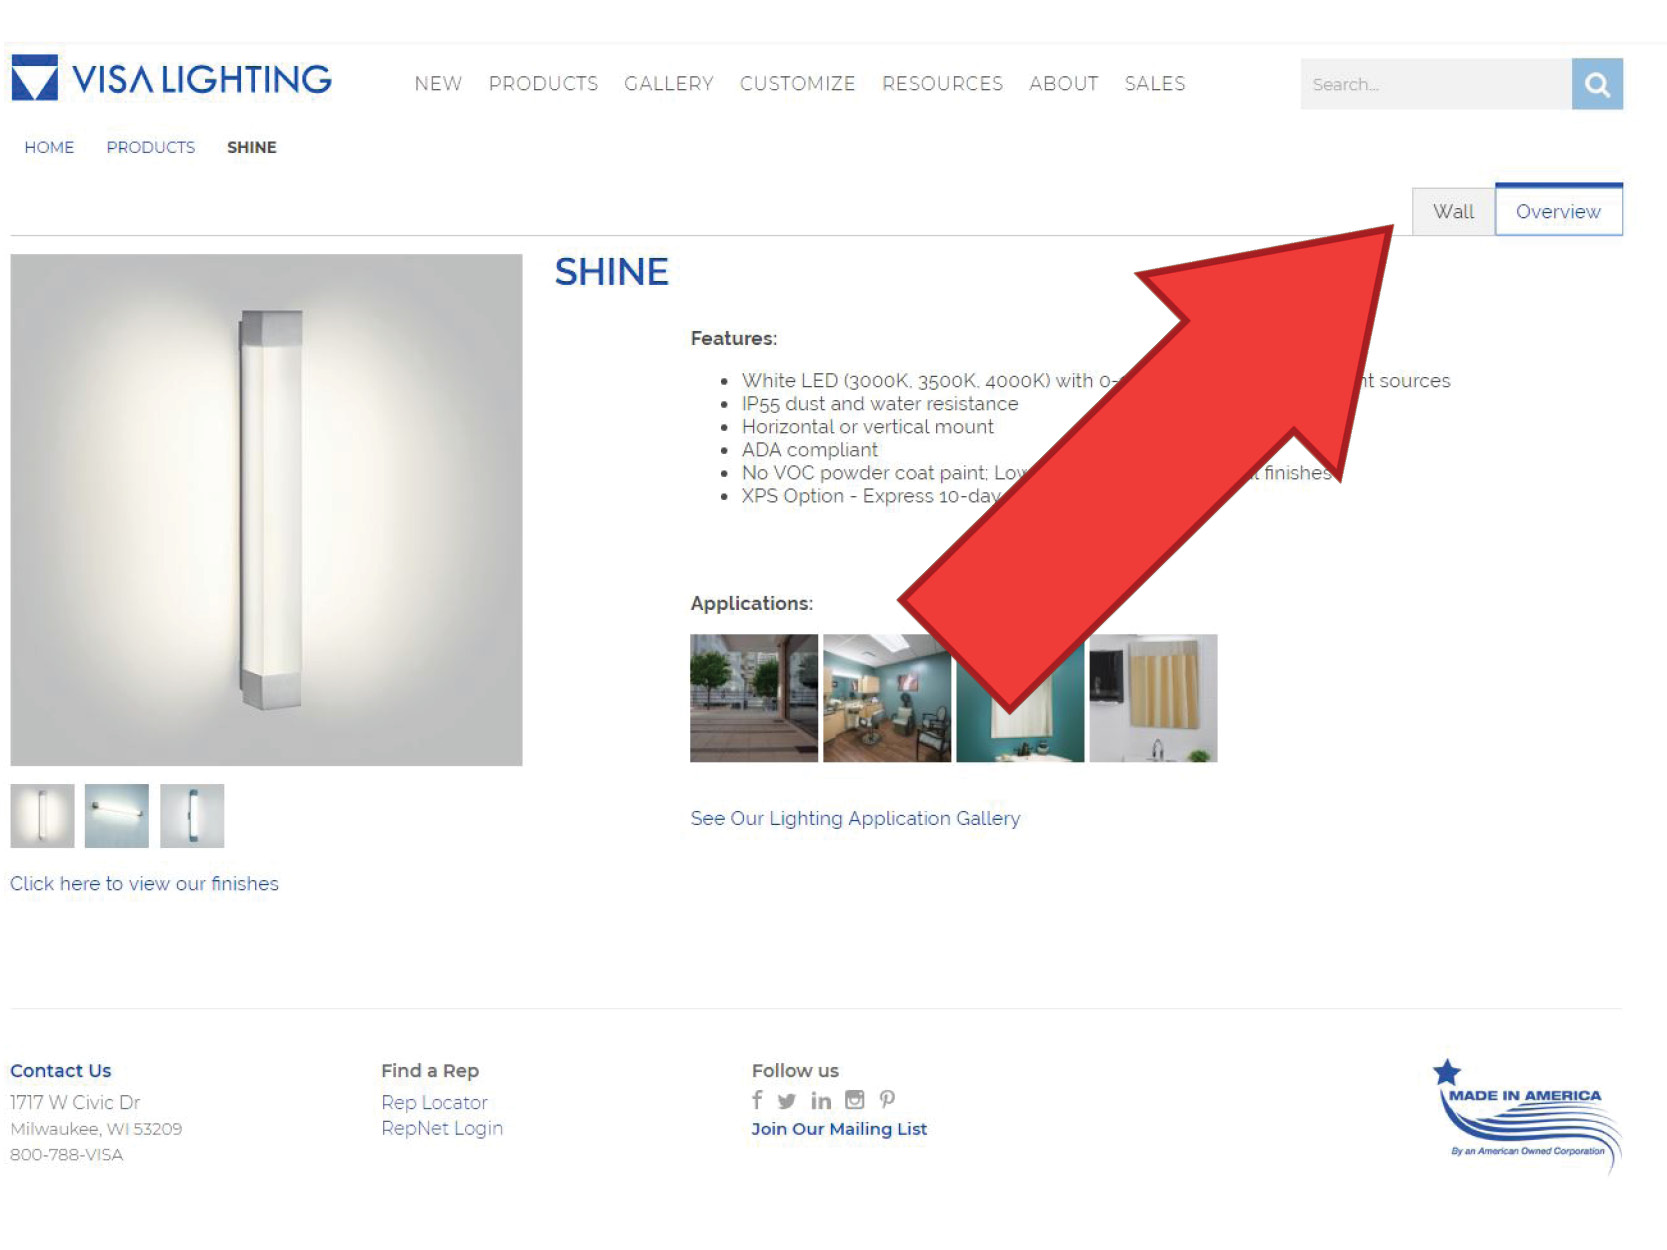 The product Shine, which has several BIM files available including Revit lighting files and Sketchup lighting files